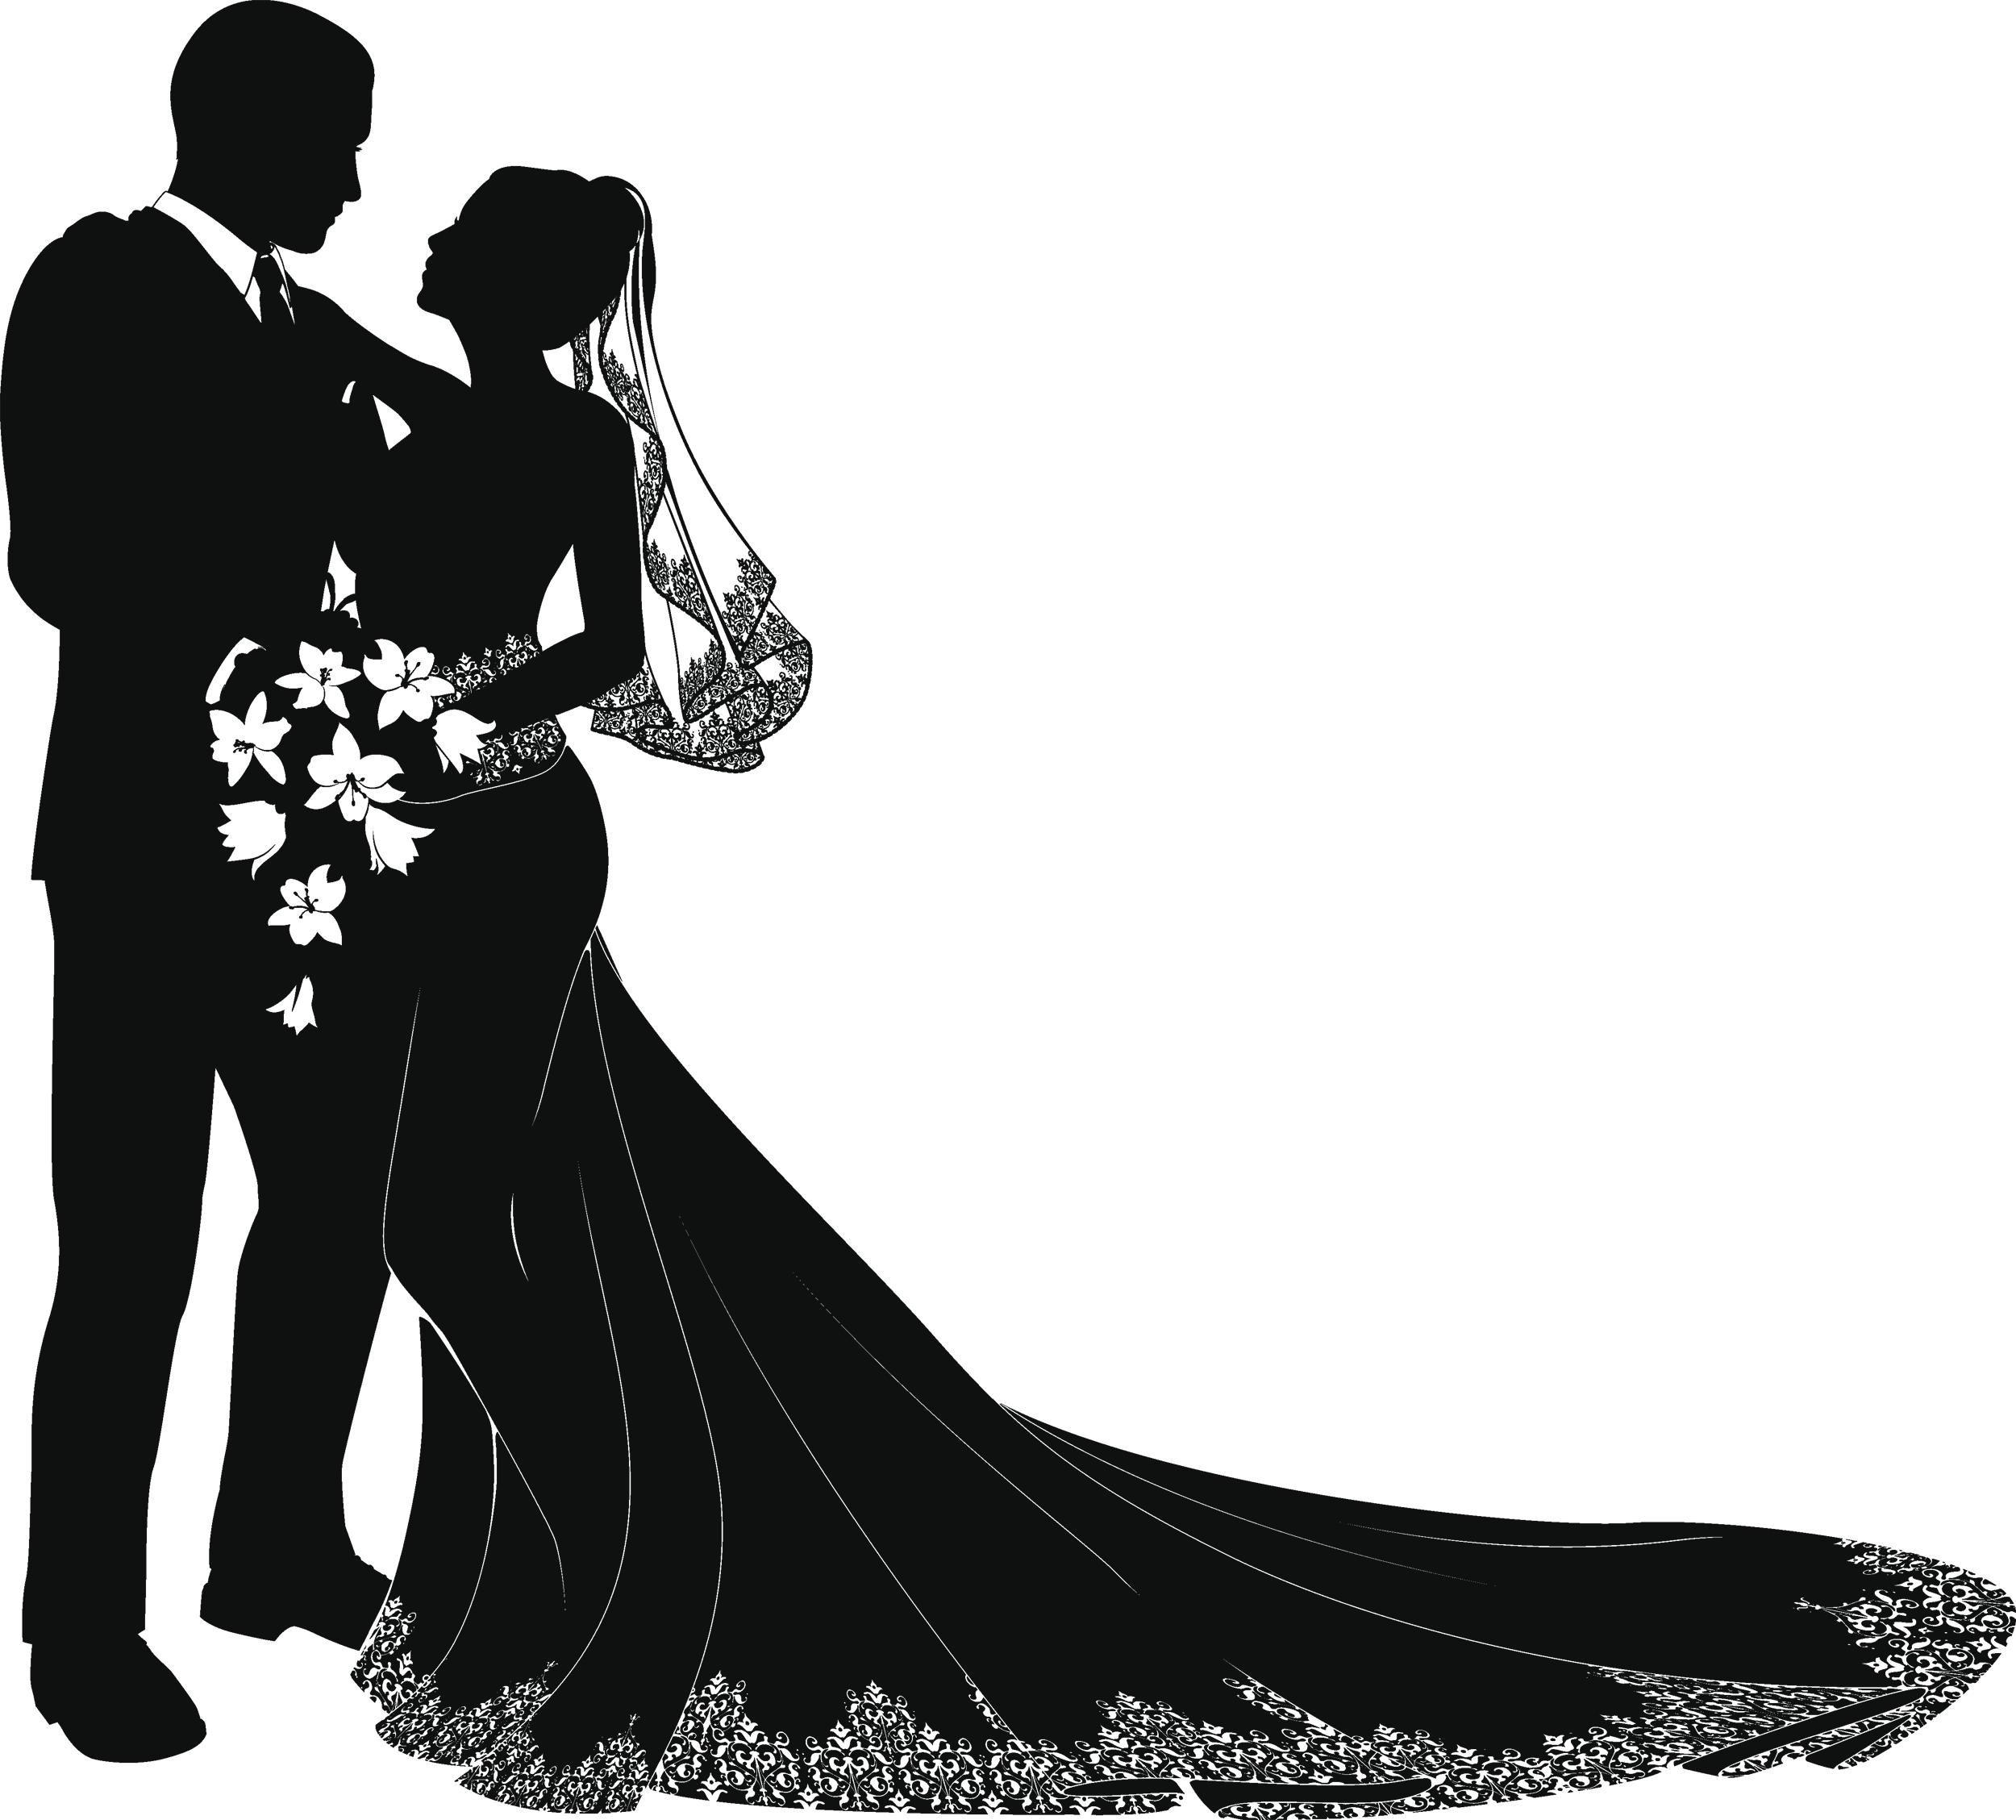 Wedding clipart silhouette graphic black and white stock Bride and groom silhouette wedding clipart clipart images ... graphic black and white stock